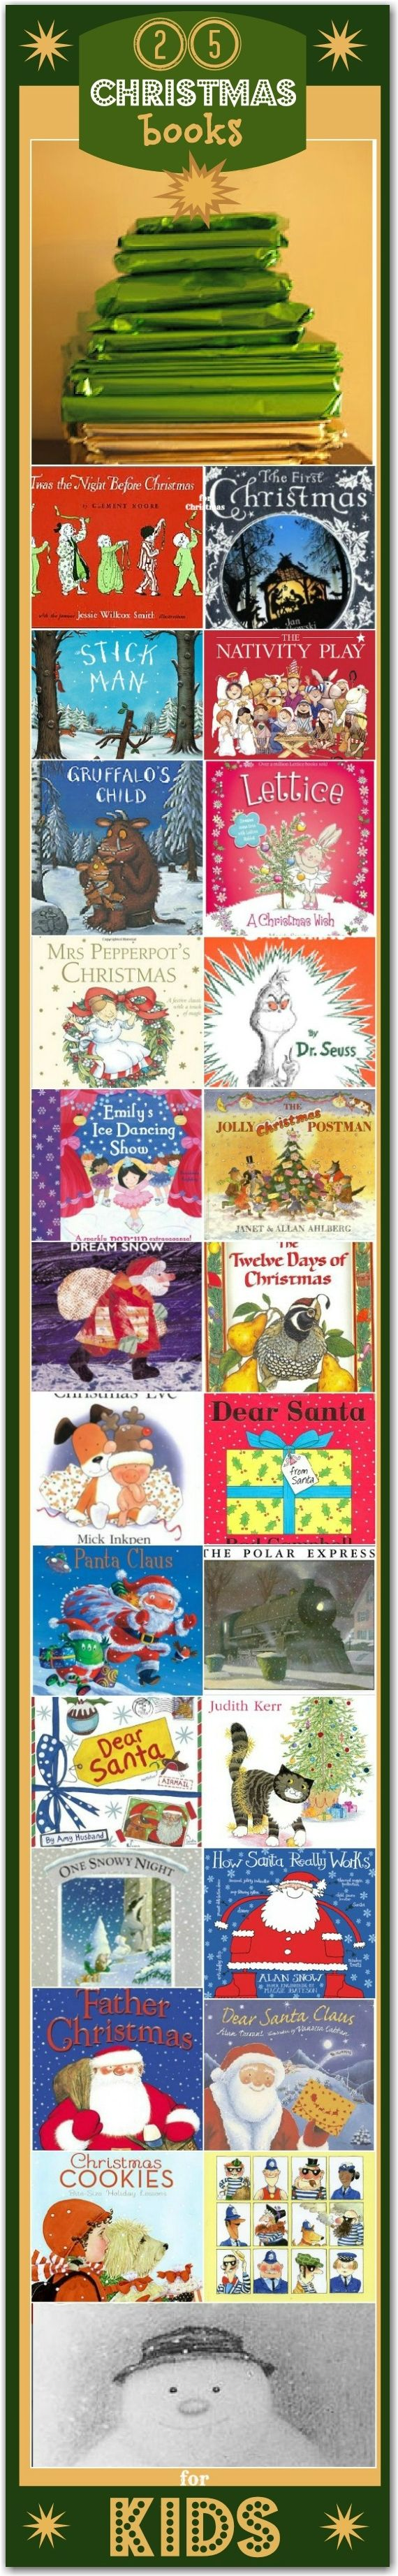 25 Books for Christmas